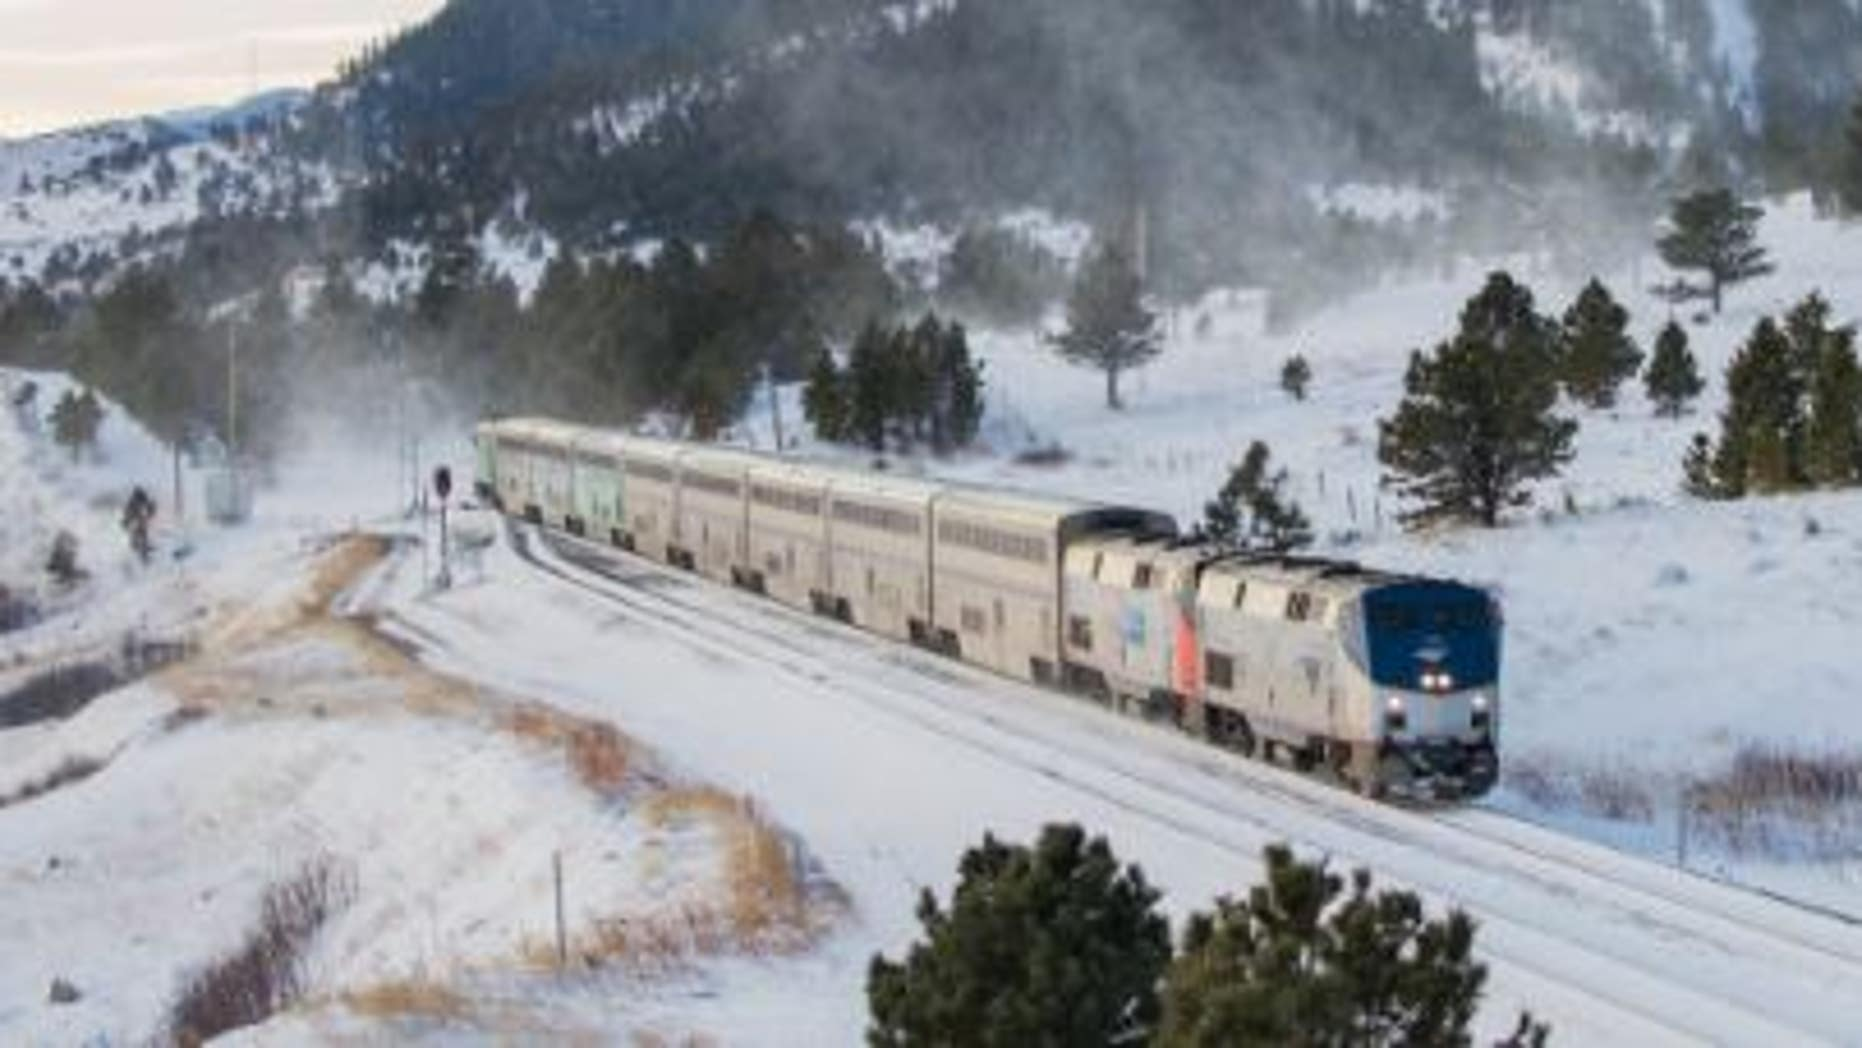 Amtrak train stranded in OR  after hitting tree